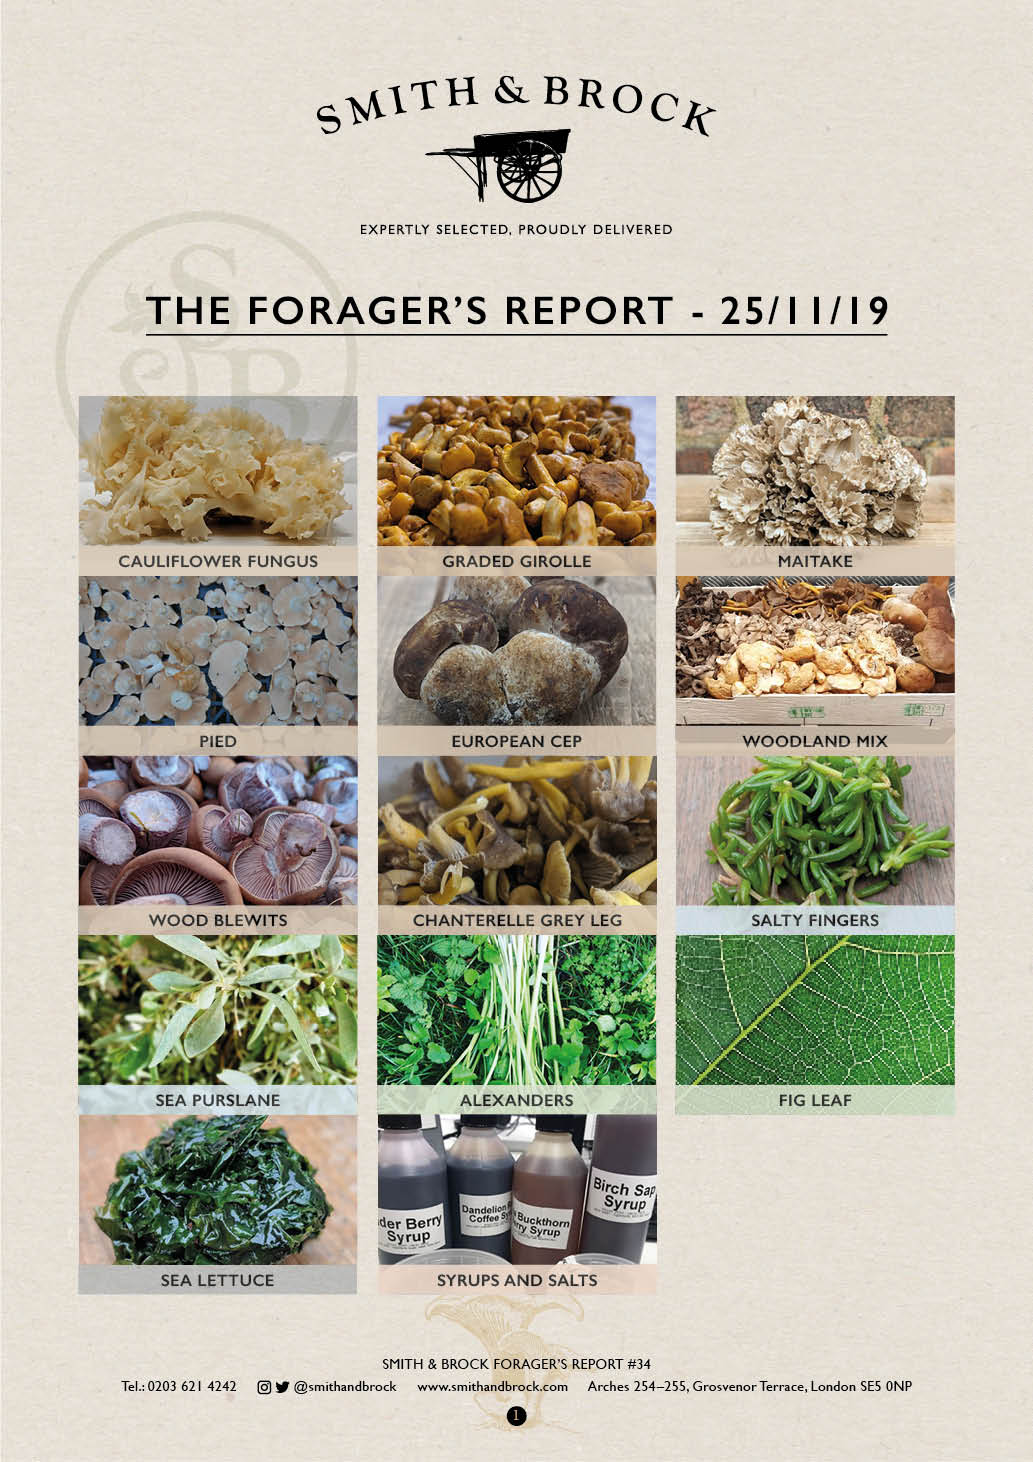 Smith&Brock Foraged Products Report 25 Nov 2019 34